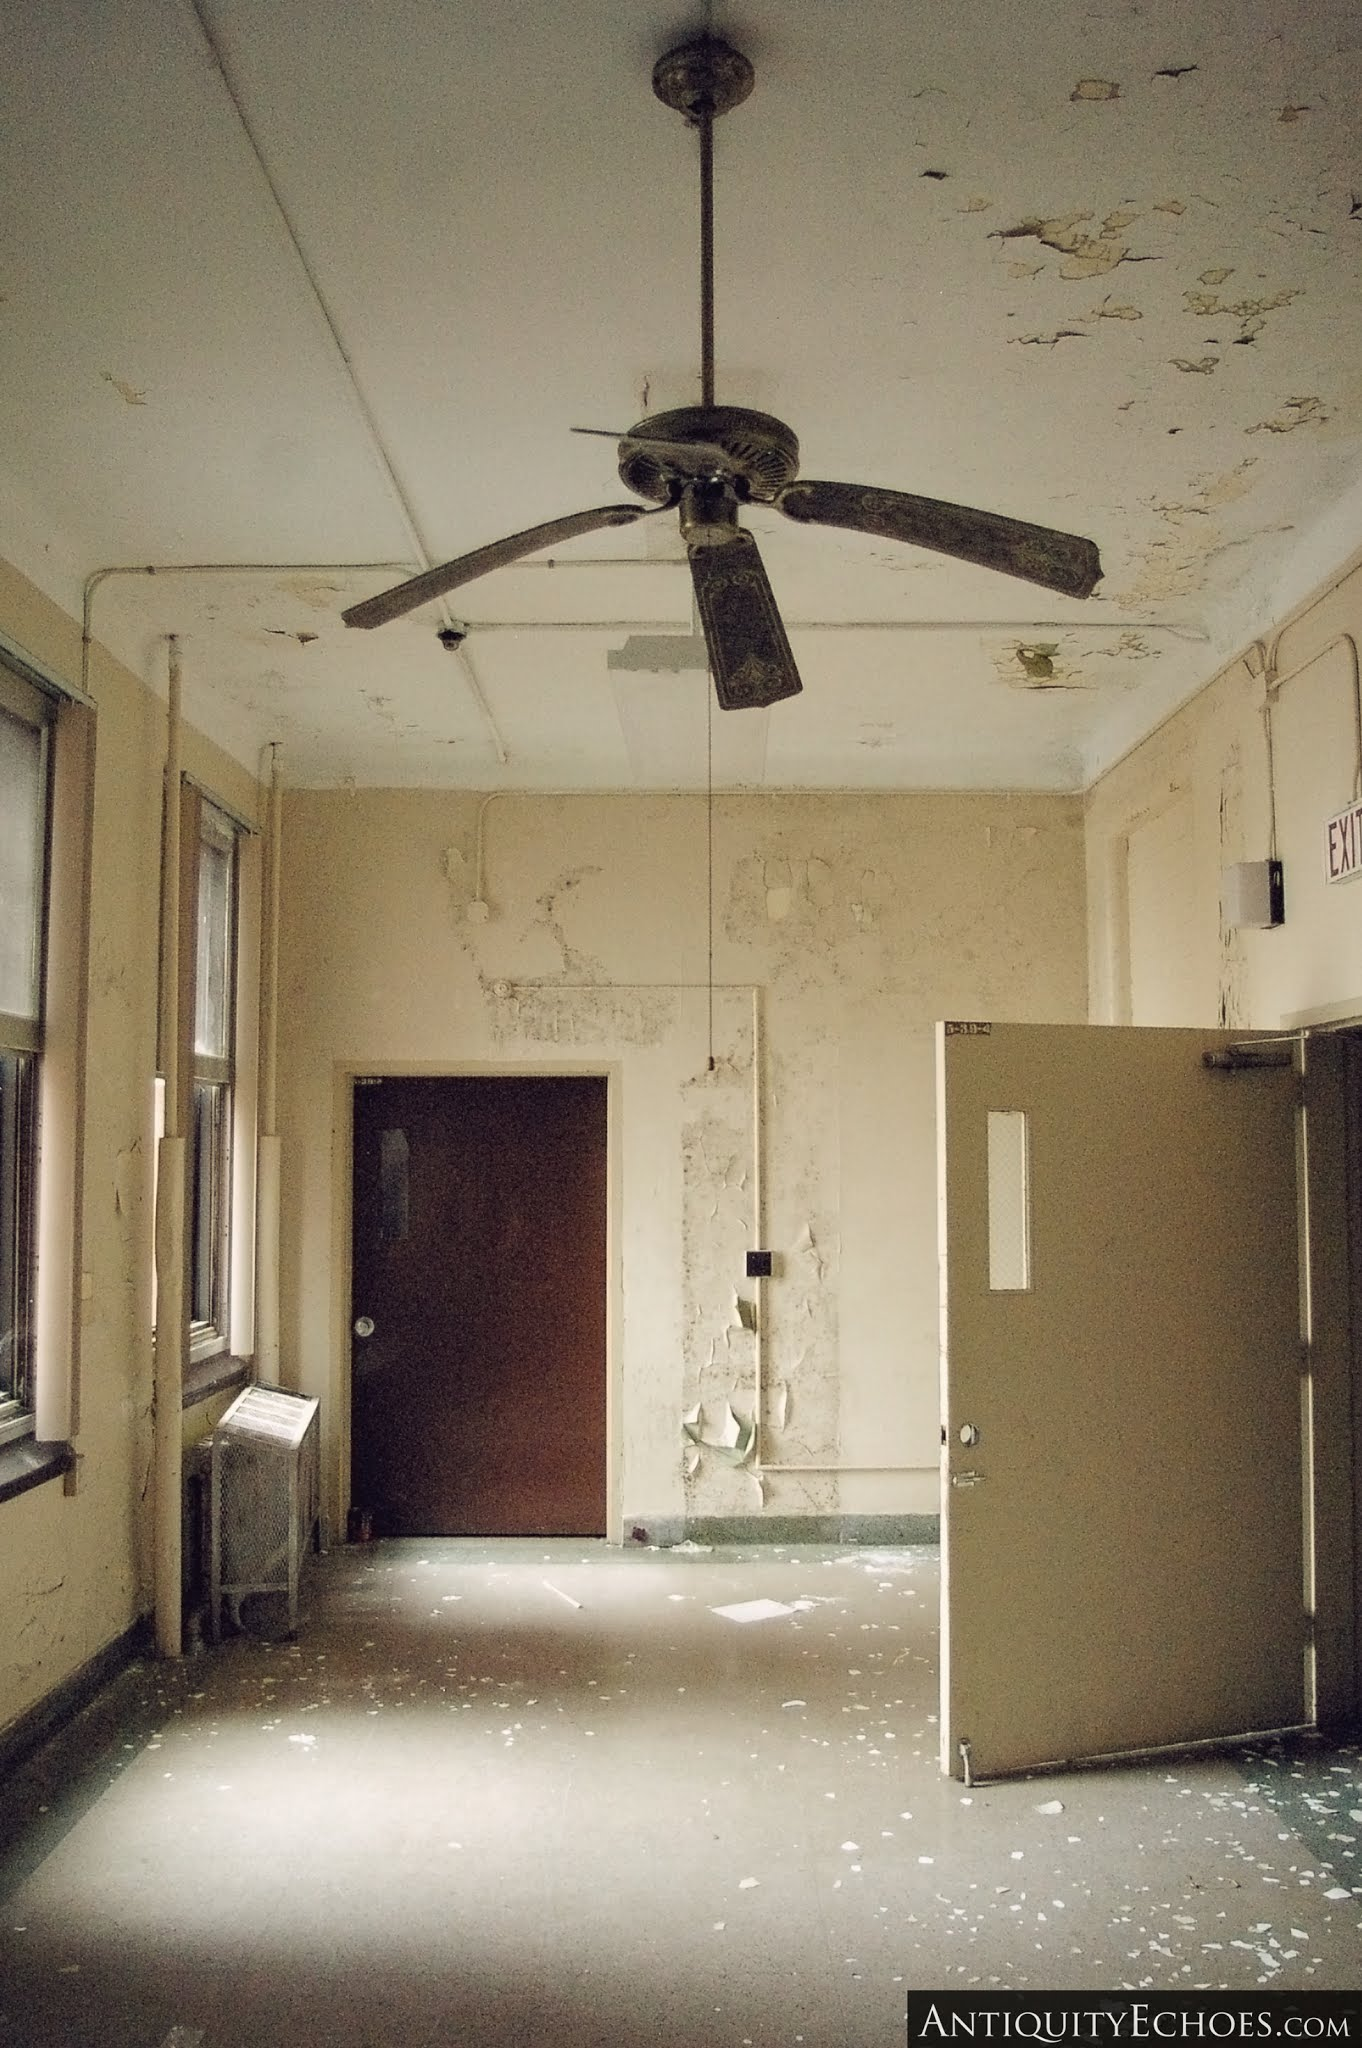 Overbrook Asylum - Sad Ceiling Fan